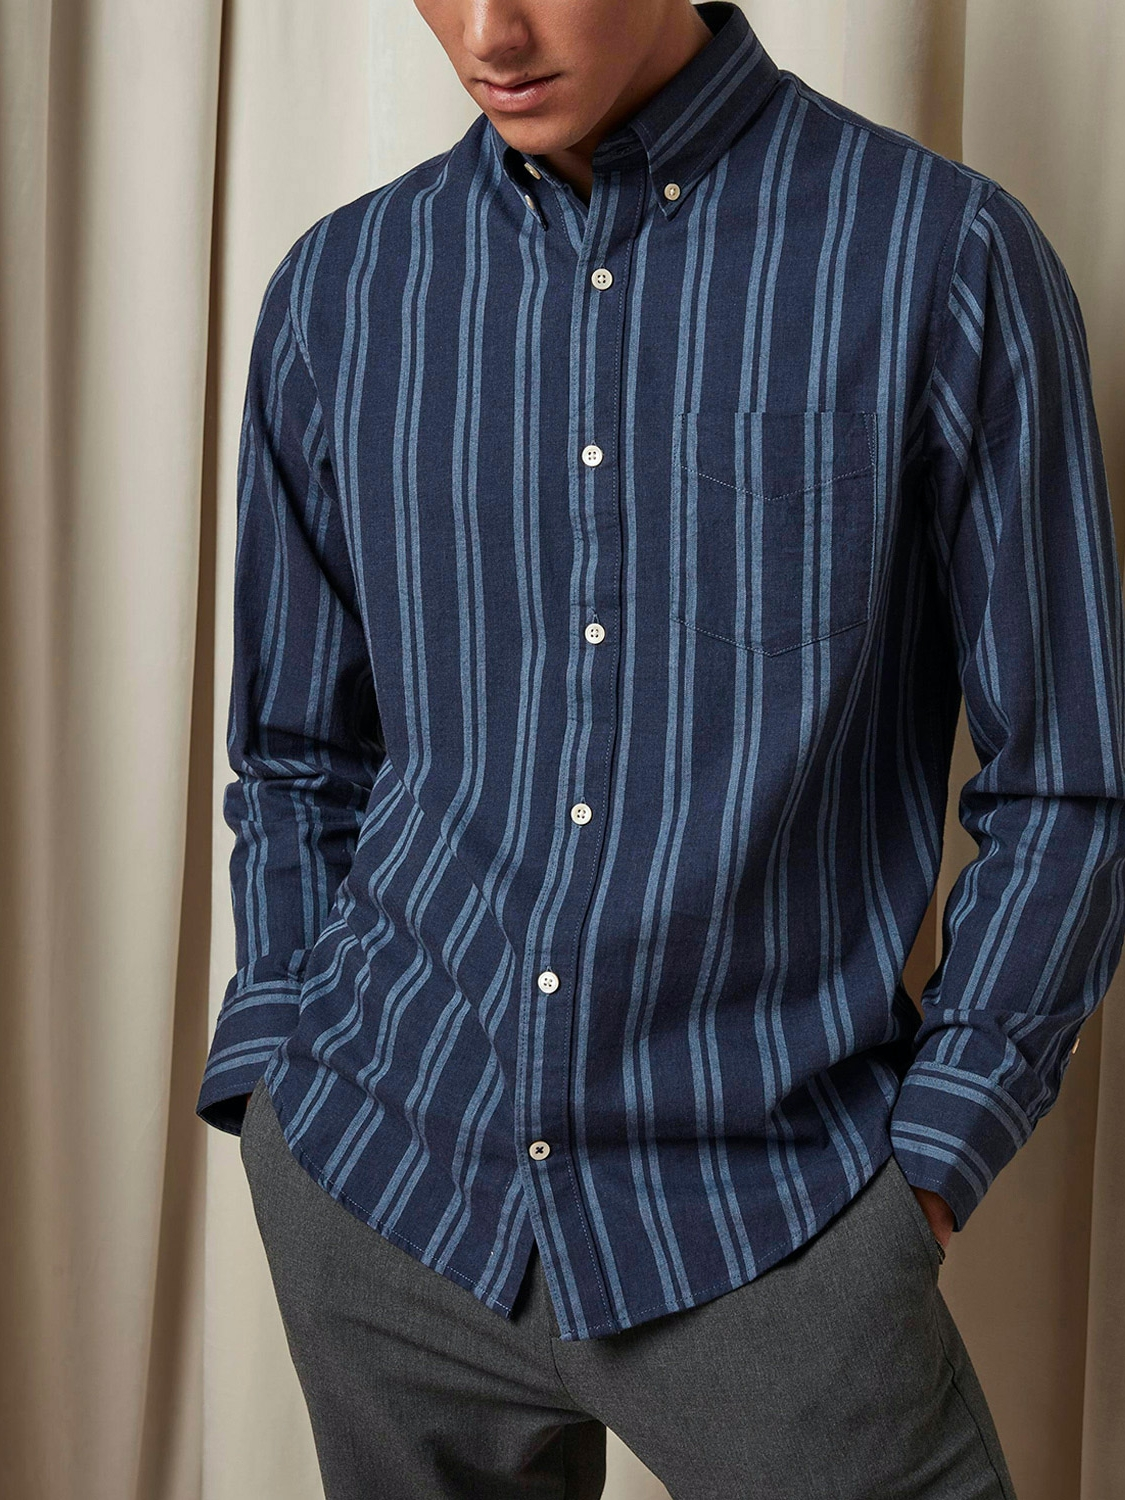 NN07 - Levon Shirt 5728 navy stripe | GATE 36 Hobro